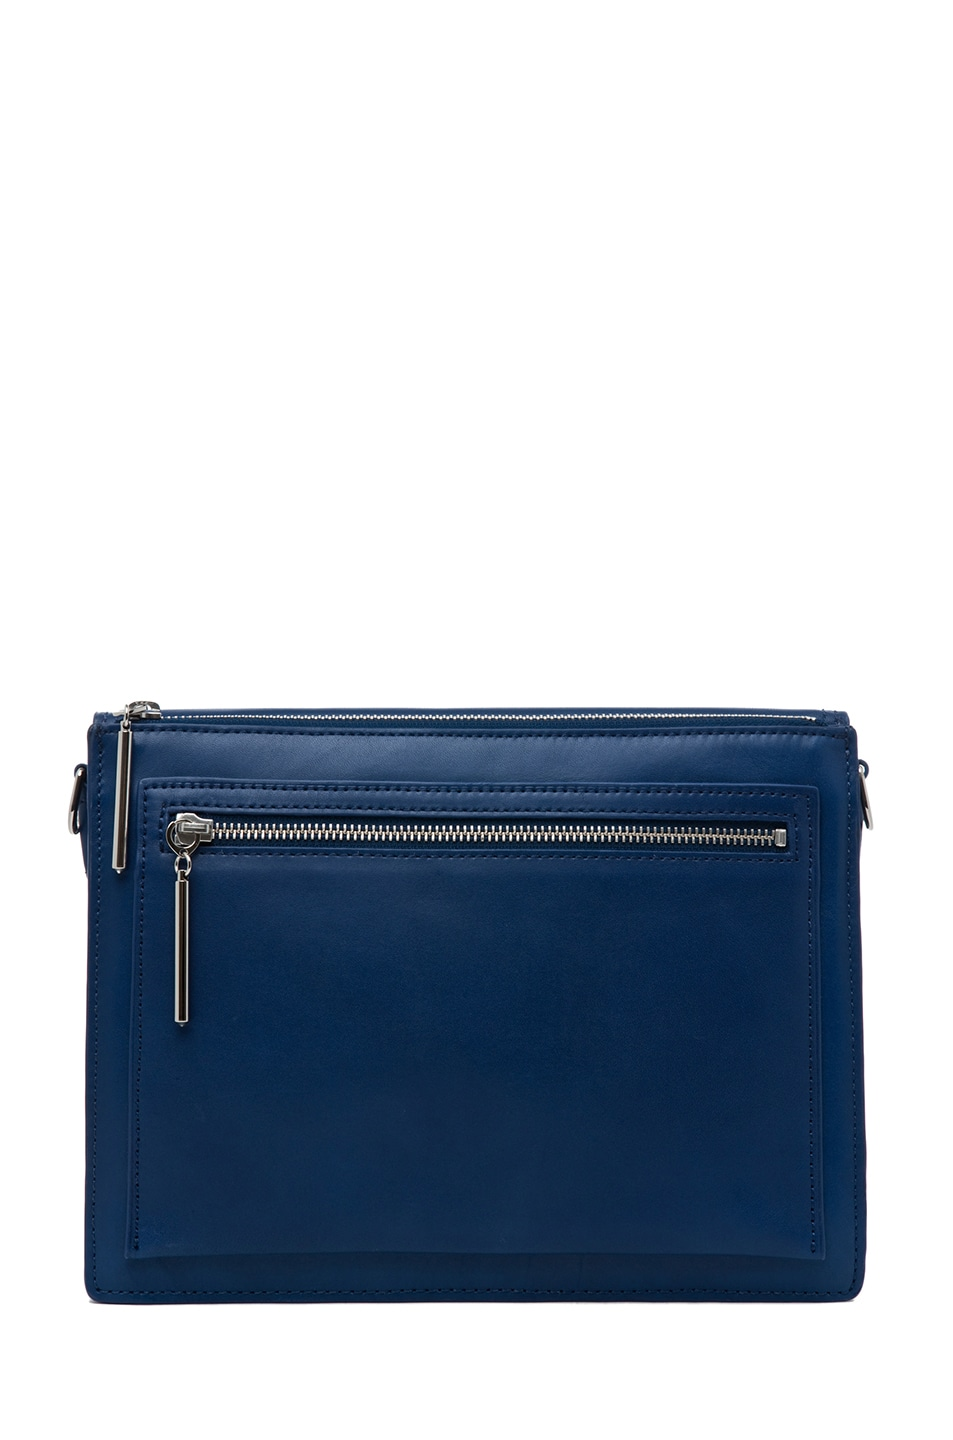 Image 2 of 3.1 phillip lim Polly Double Compartment Crossbody in Cerulean